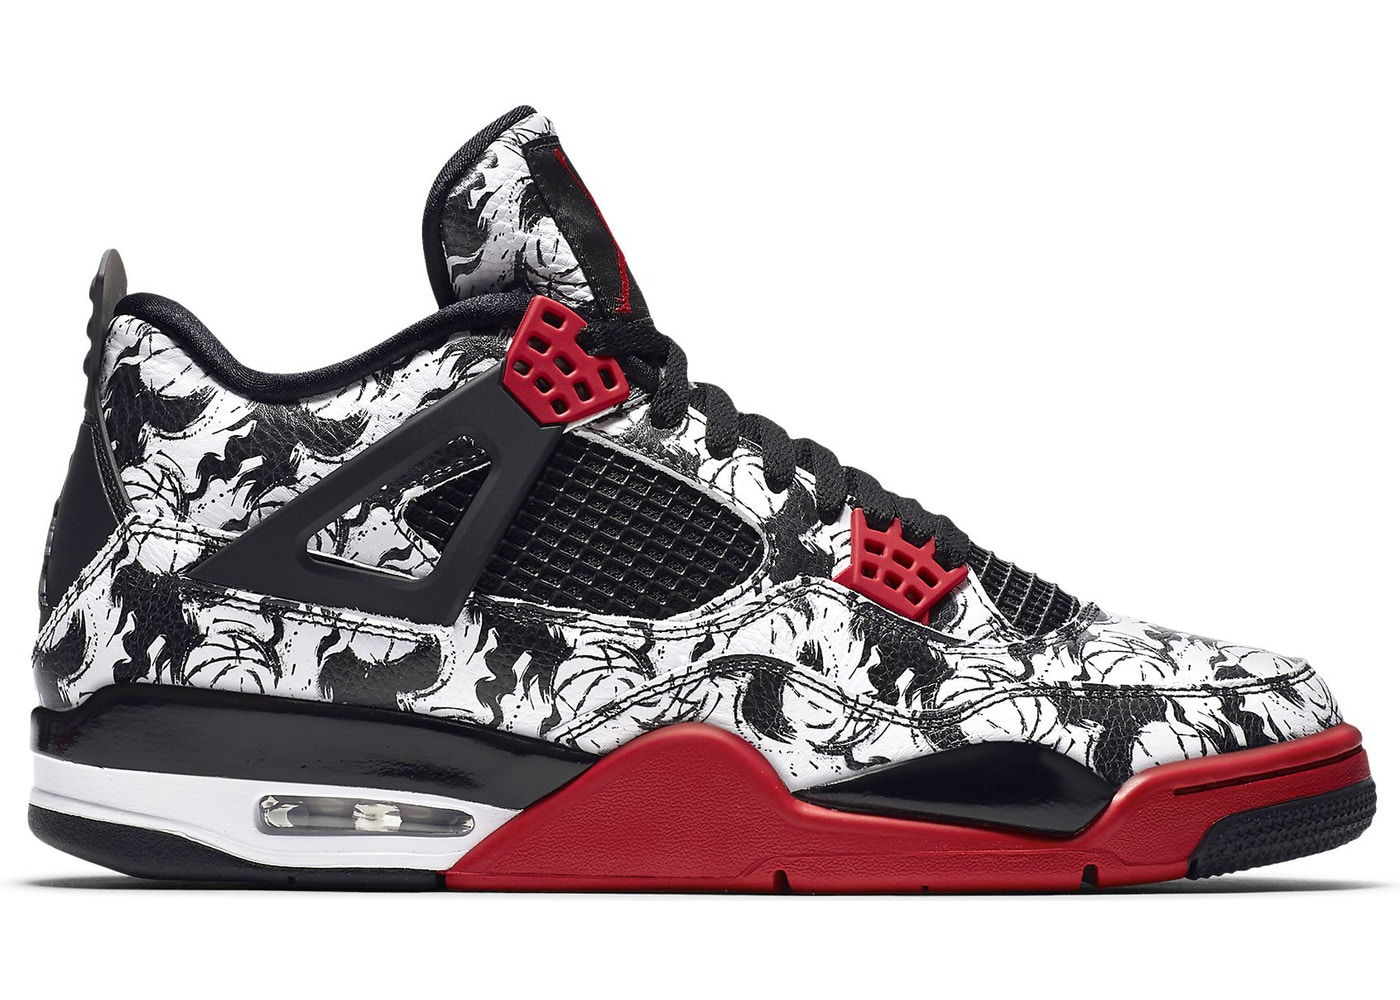 buy online 507d6 f5428 Jordan 4 Retro Tattoo (2018) - BQ0897-006